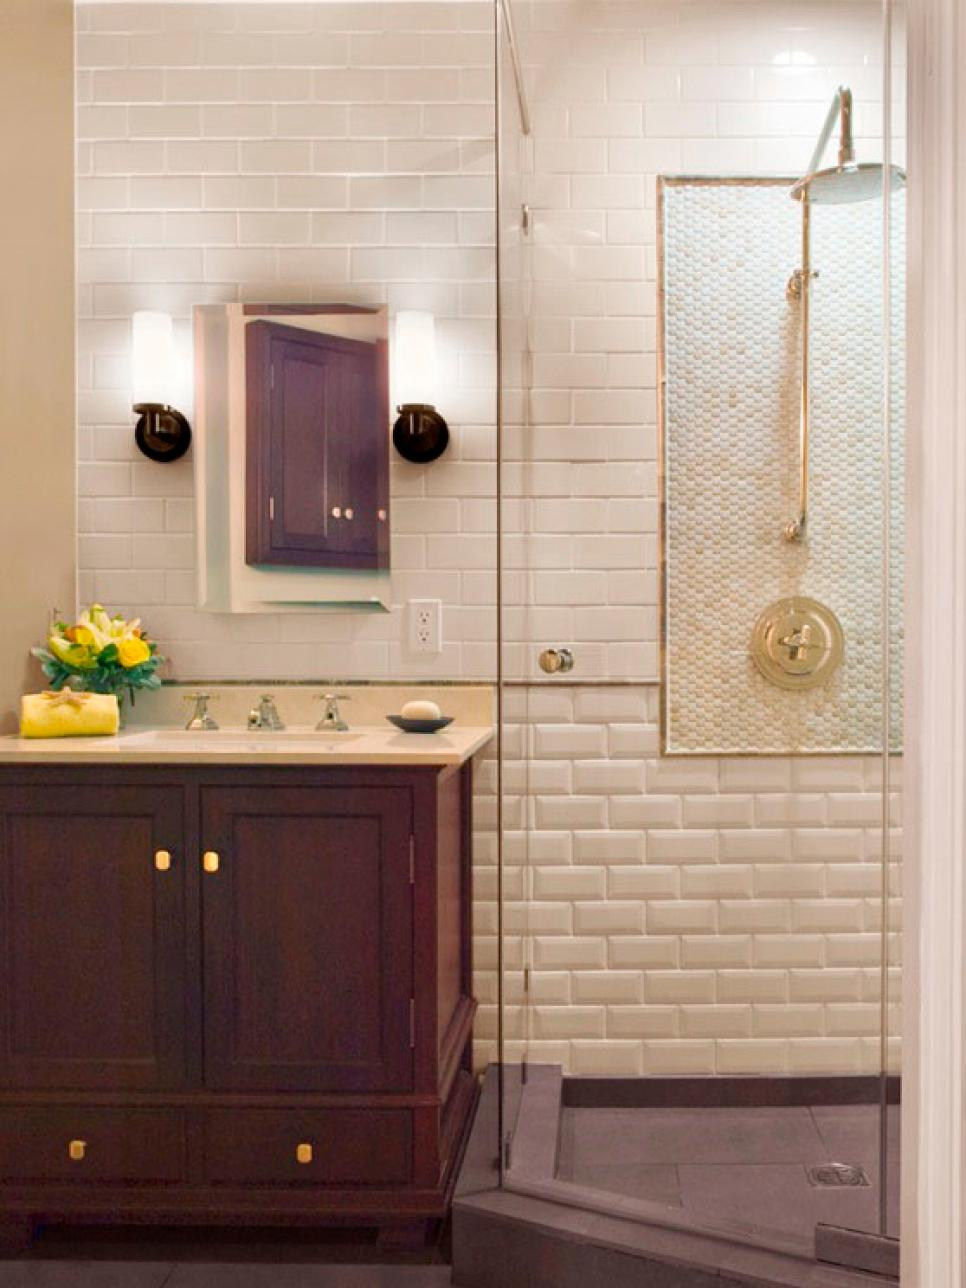 Bathroom shower designs hgtv Bathroom tile design ideas for small bathrooms